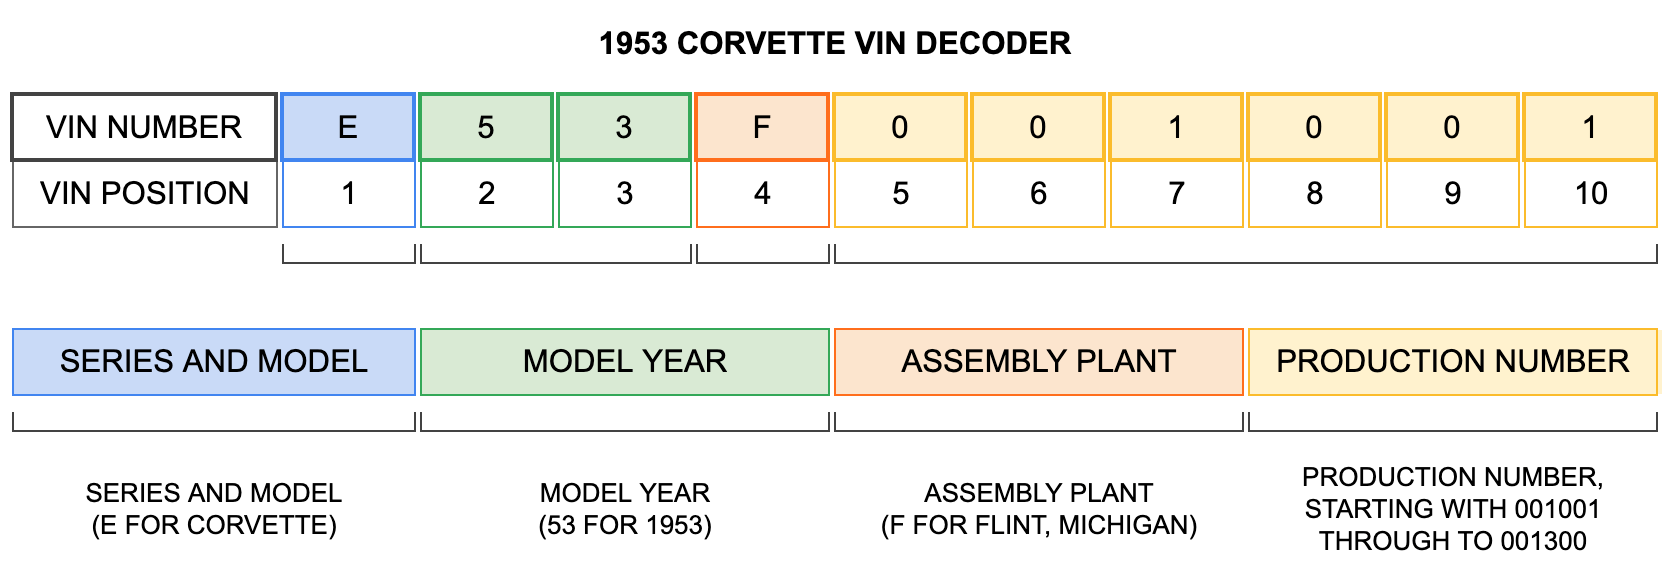 1953 Corvette VIN Decoder